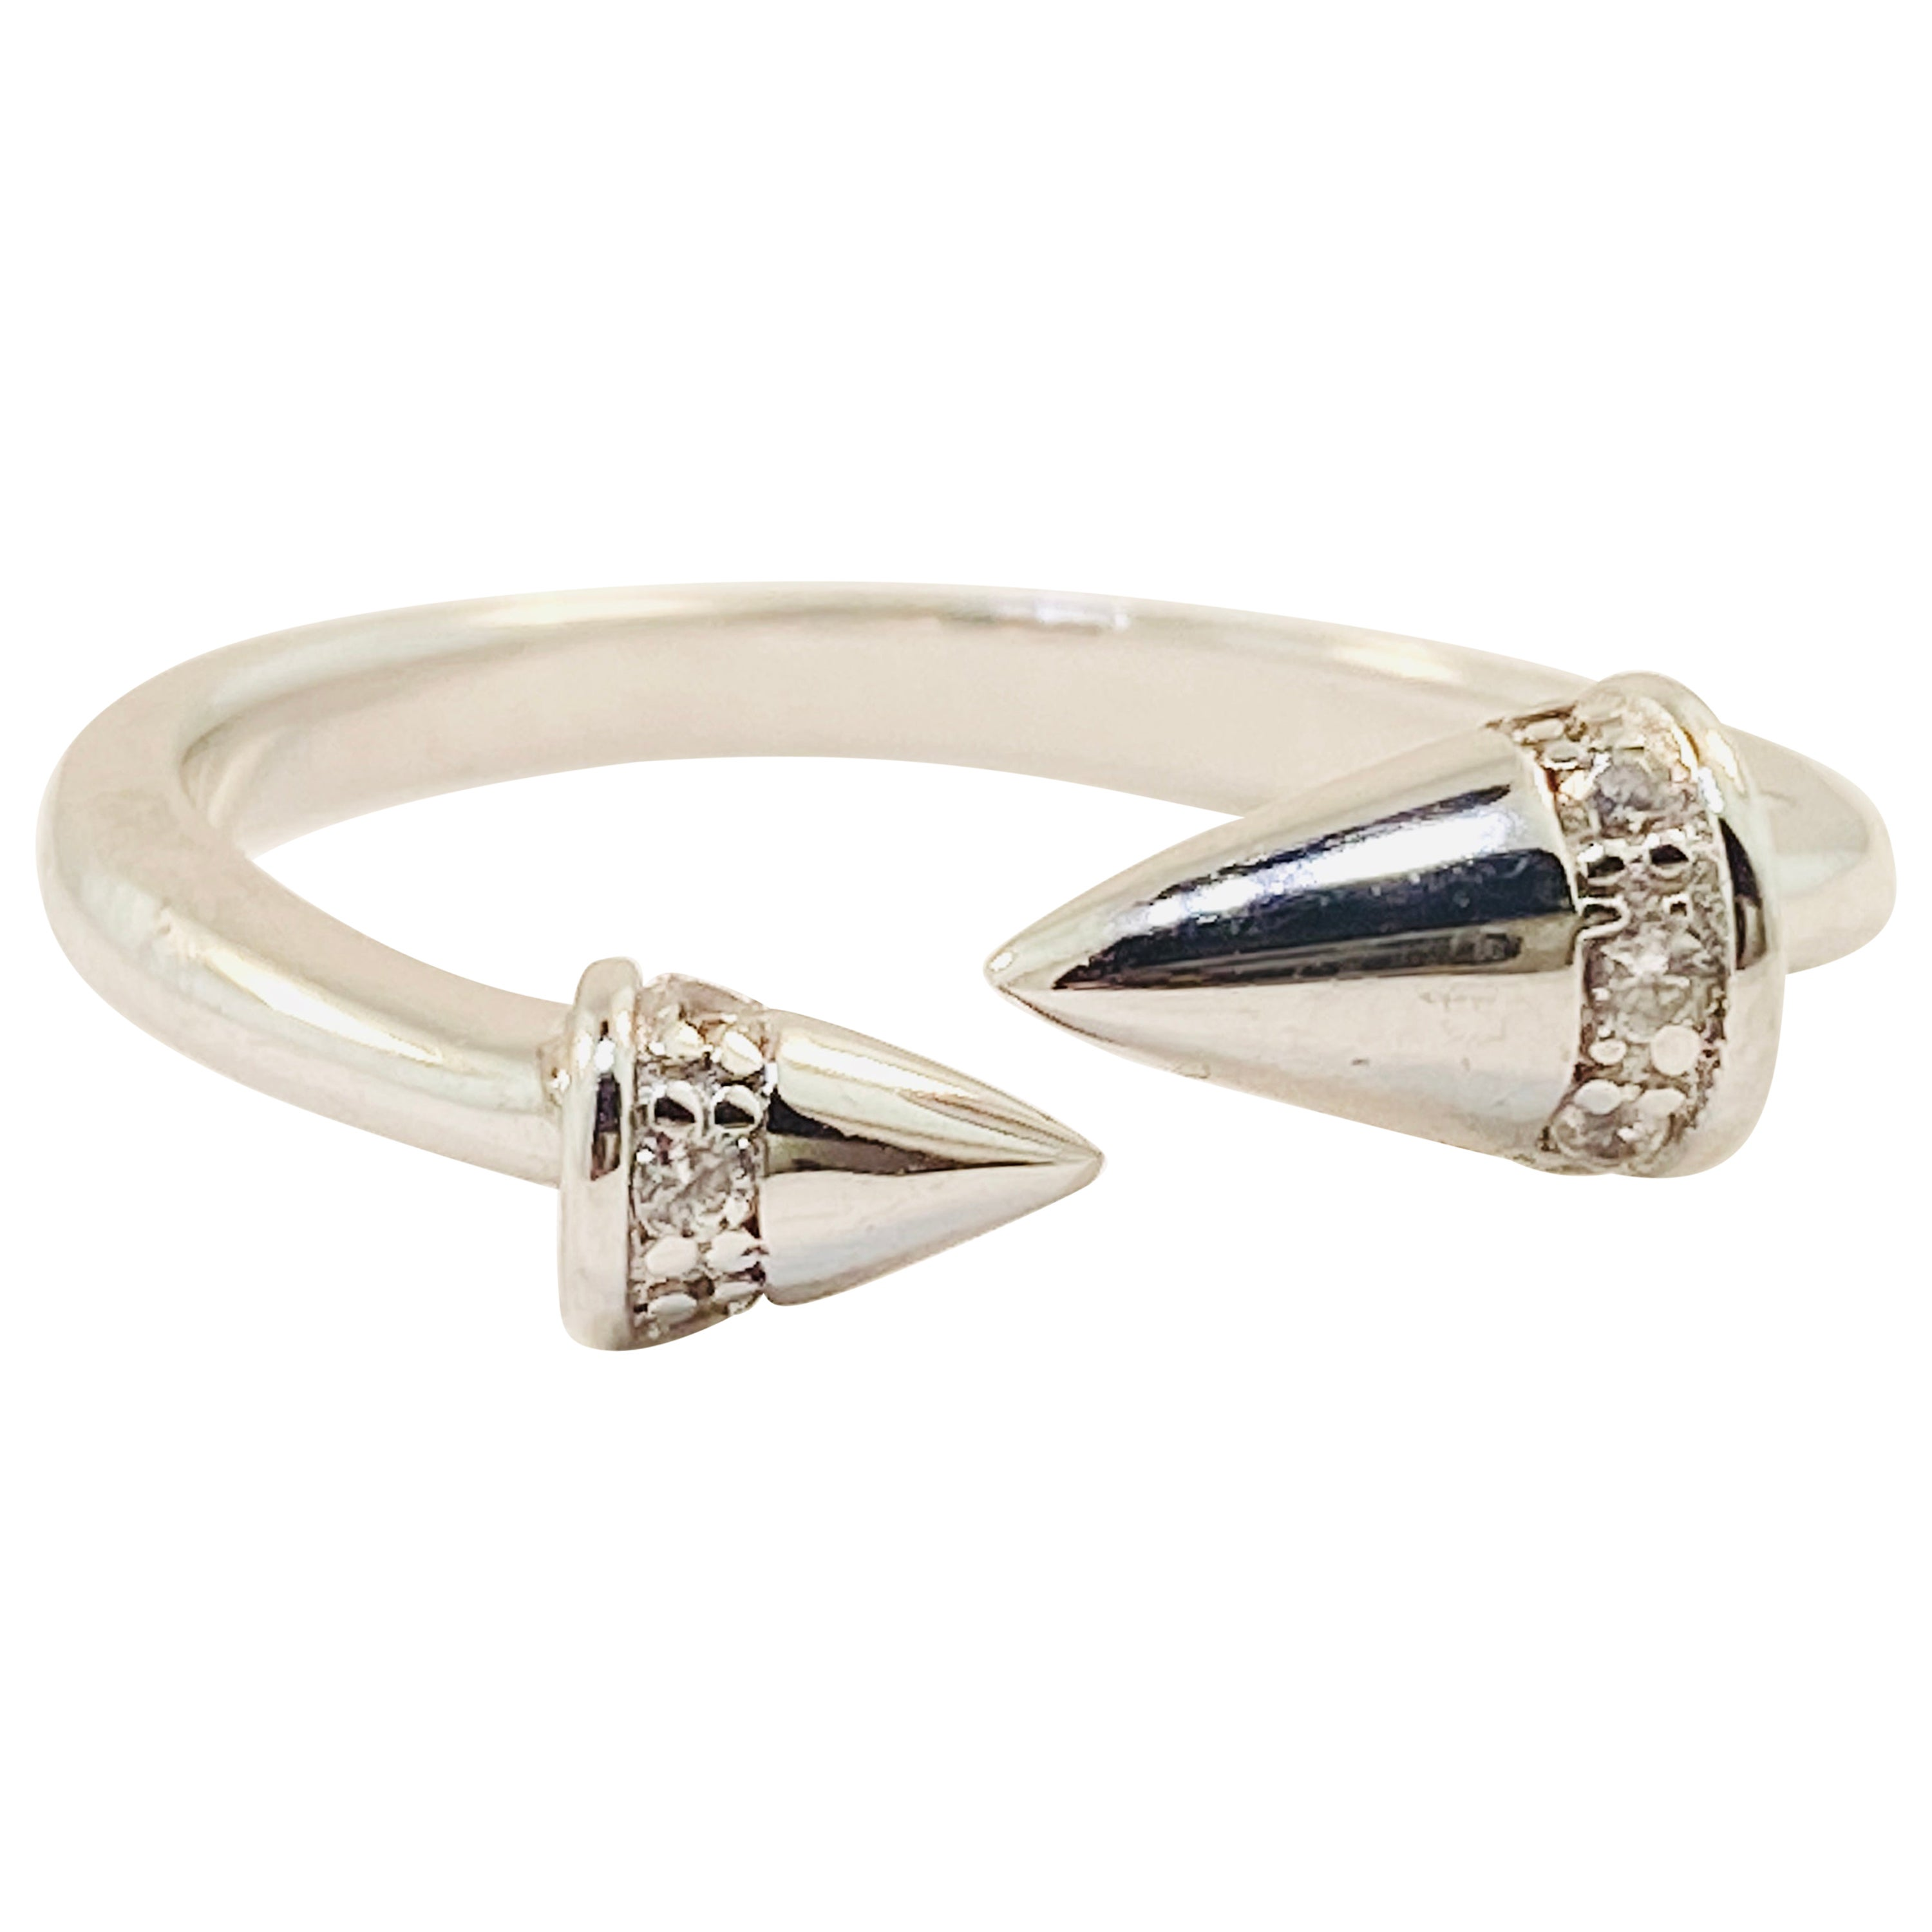 Sterling Silver Diamond Ring, Silver 925 Cone Statement Ring Adjustable Ring